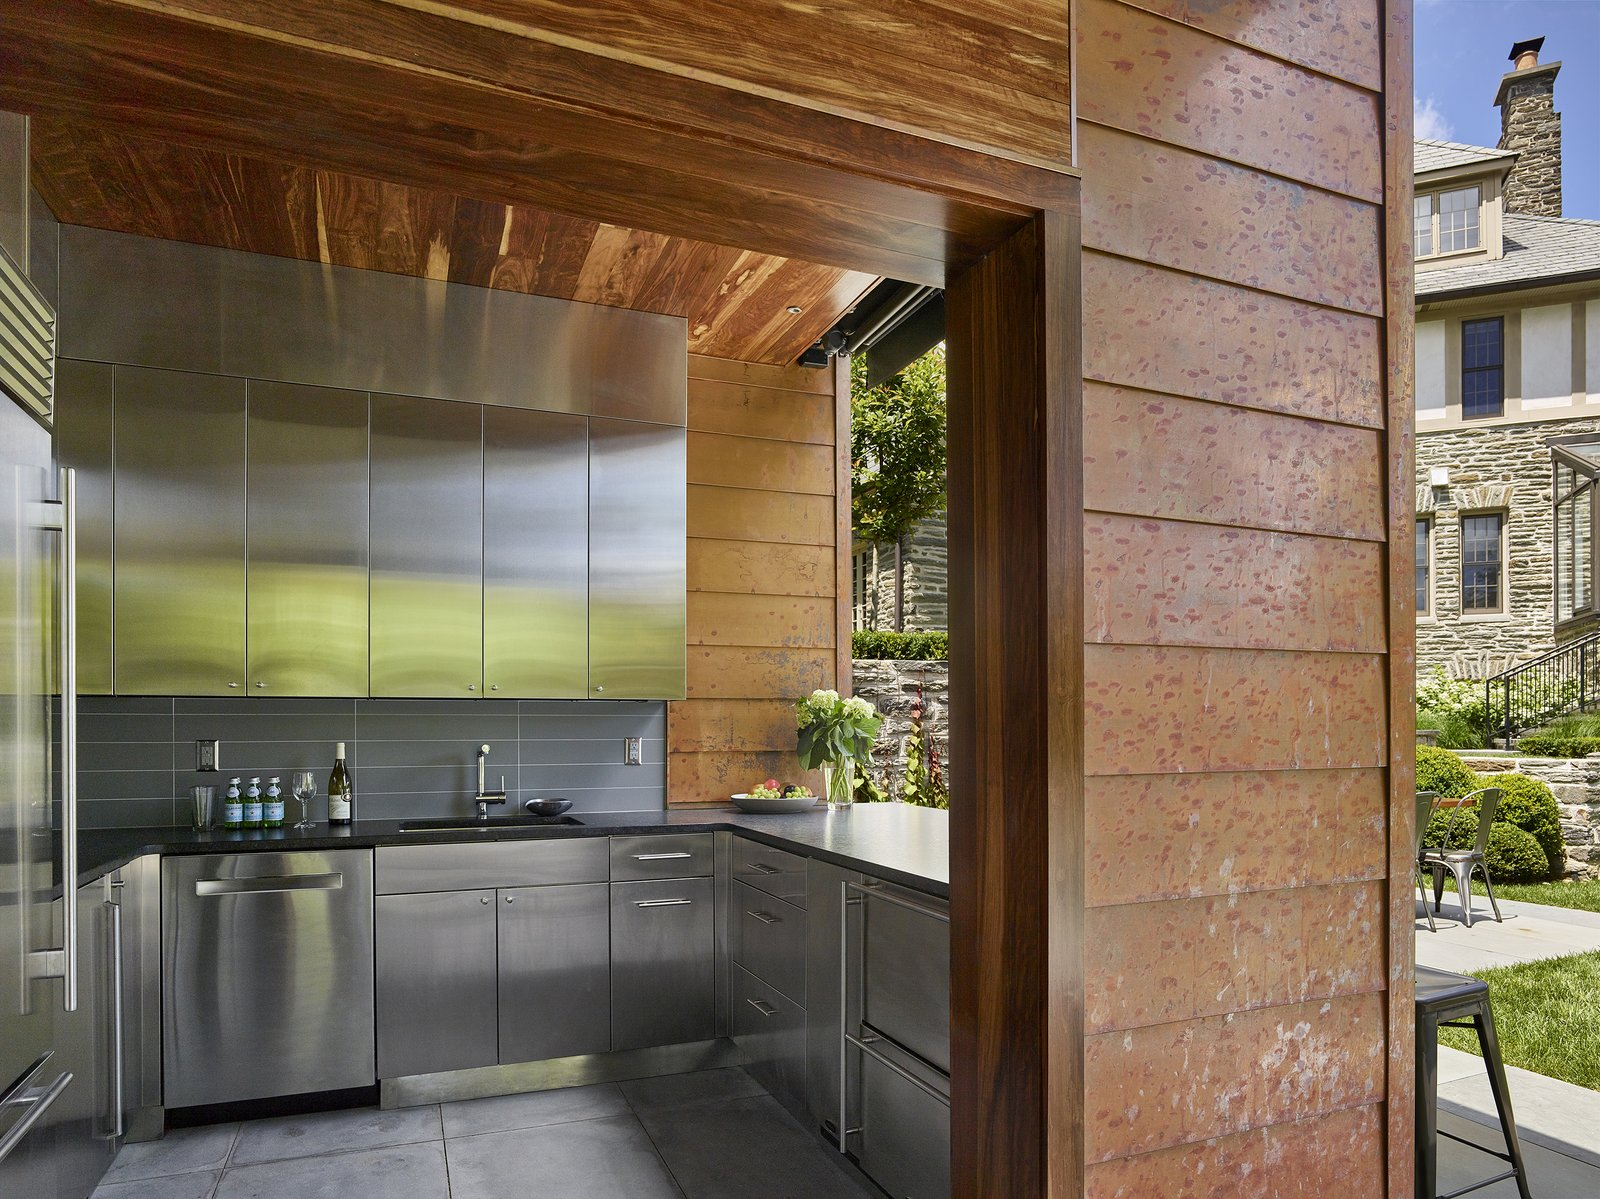 Outdoor kitchen Tagged: Slope, Trees, Walkways, Hardscapes, Stone, Back Yard, Shrubs, Pavers, Vertical, Granite, Dishwasher, Metal, Limestone, Refrigerator, Ceramic Tile, Beverage Center, Ice Maker, Undermount, and Kitchen.  Best Kitchen Stone Photos from Modern Pool House for Sloped Site